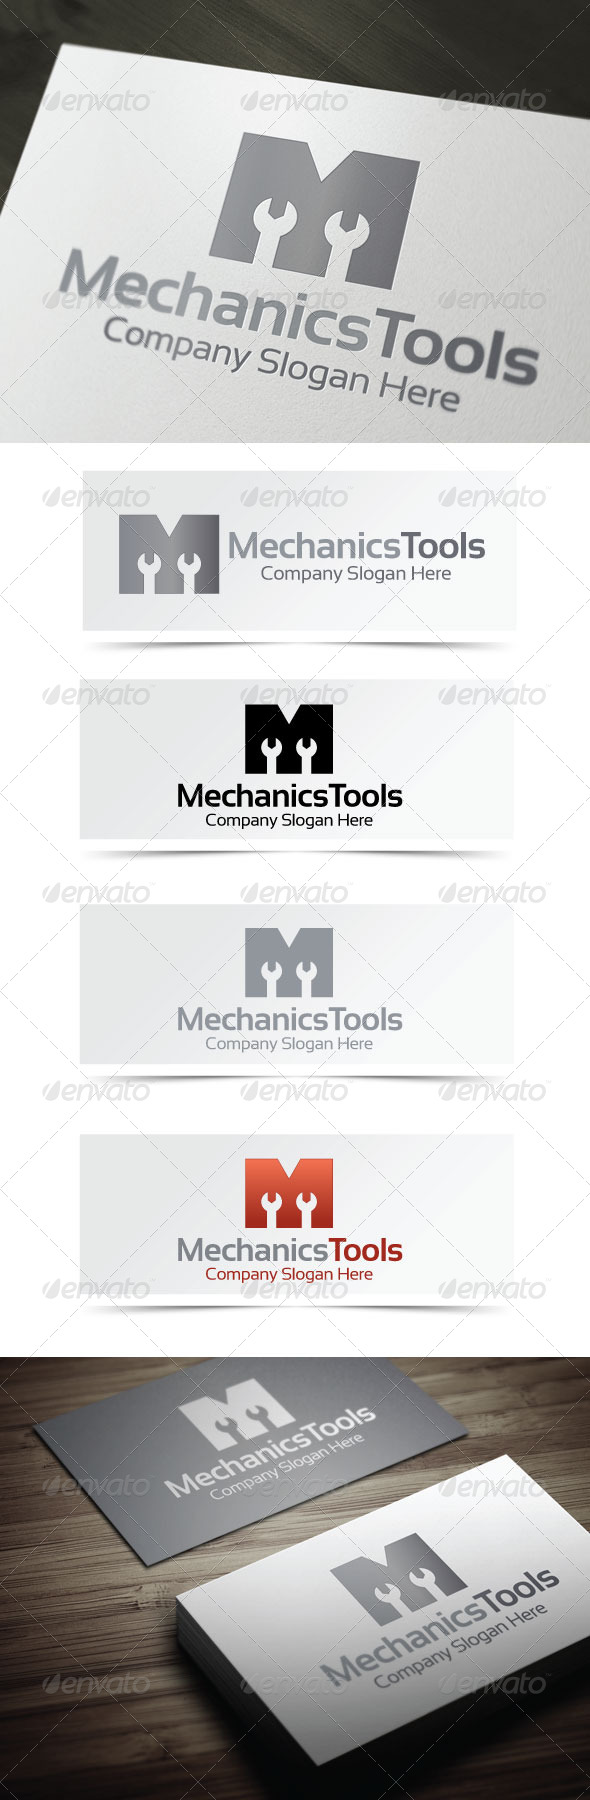 GraphicRiver Mechanics Tools 4177489